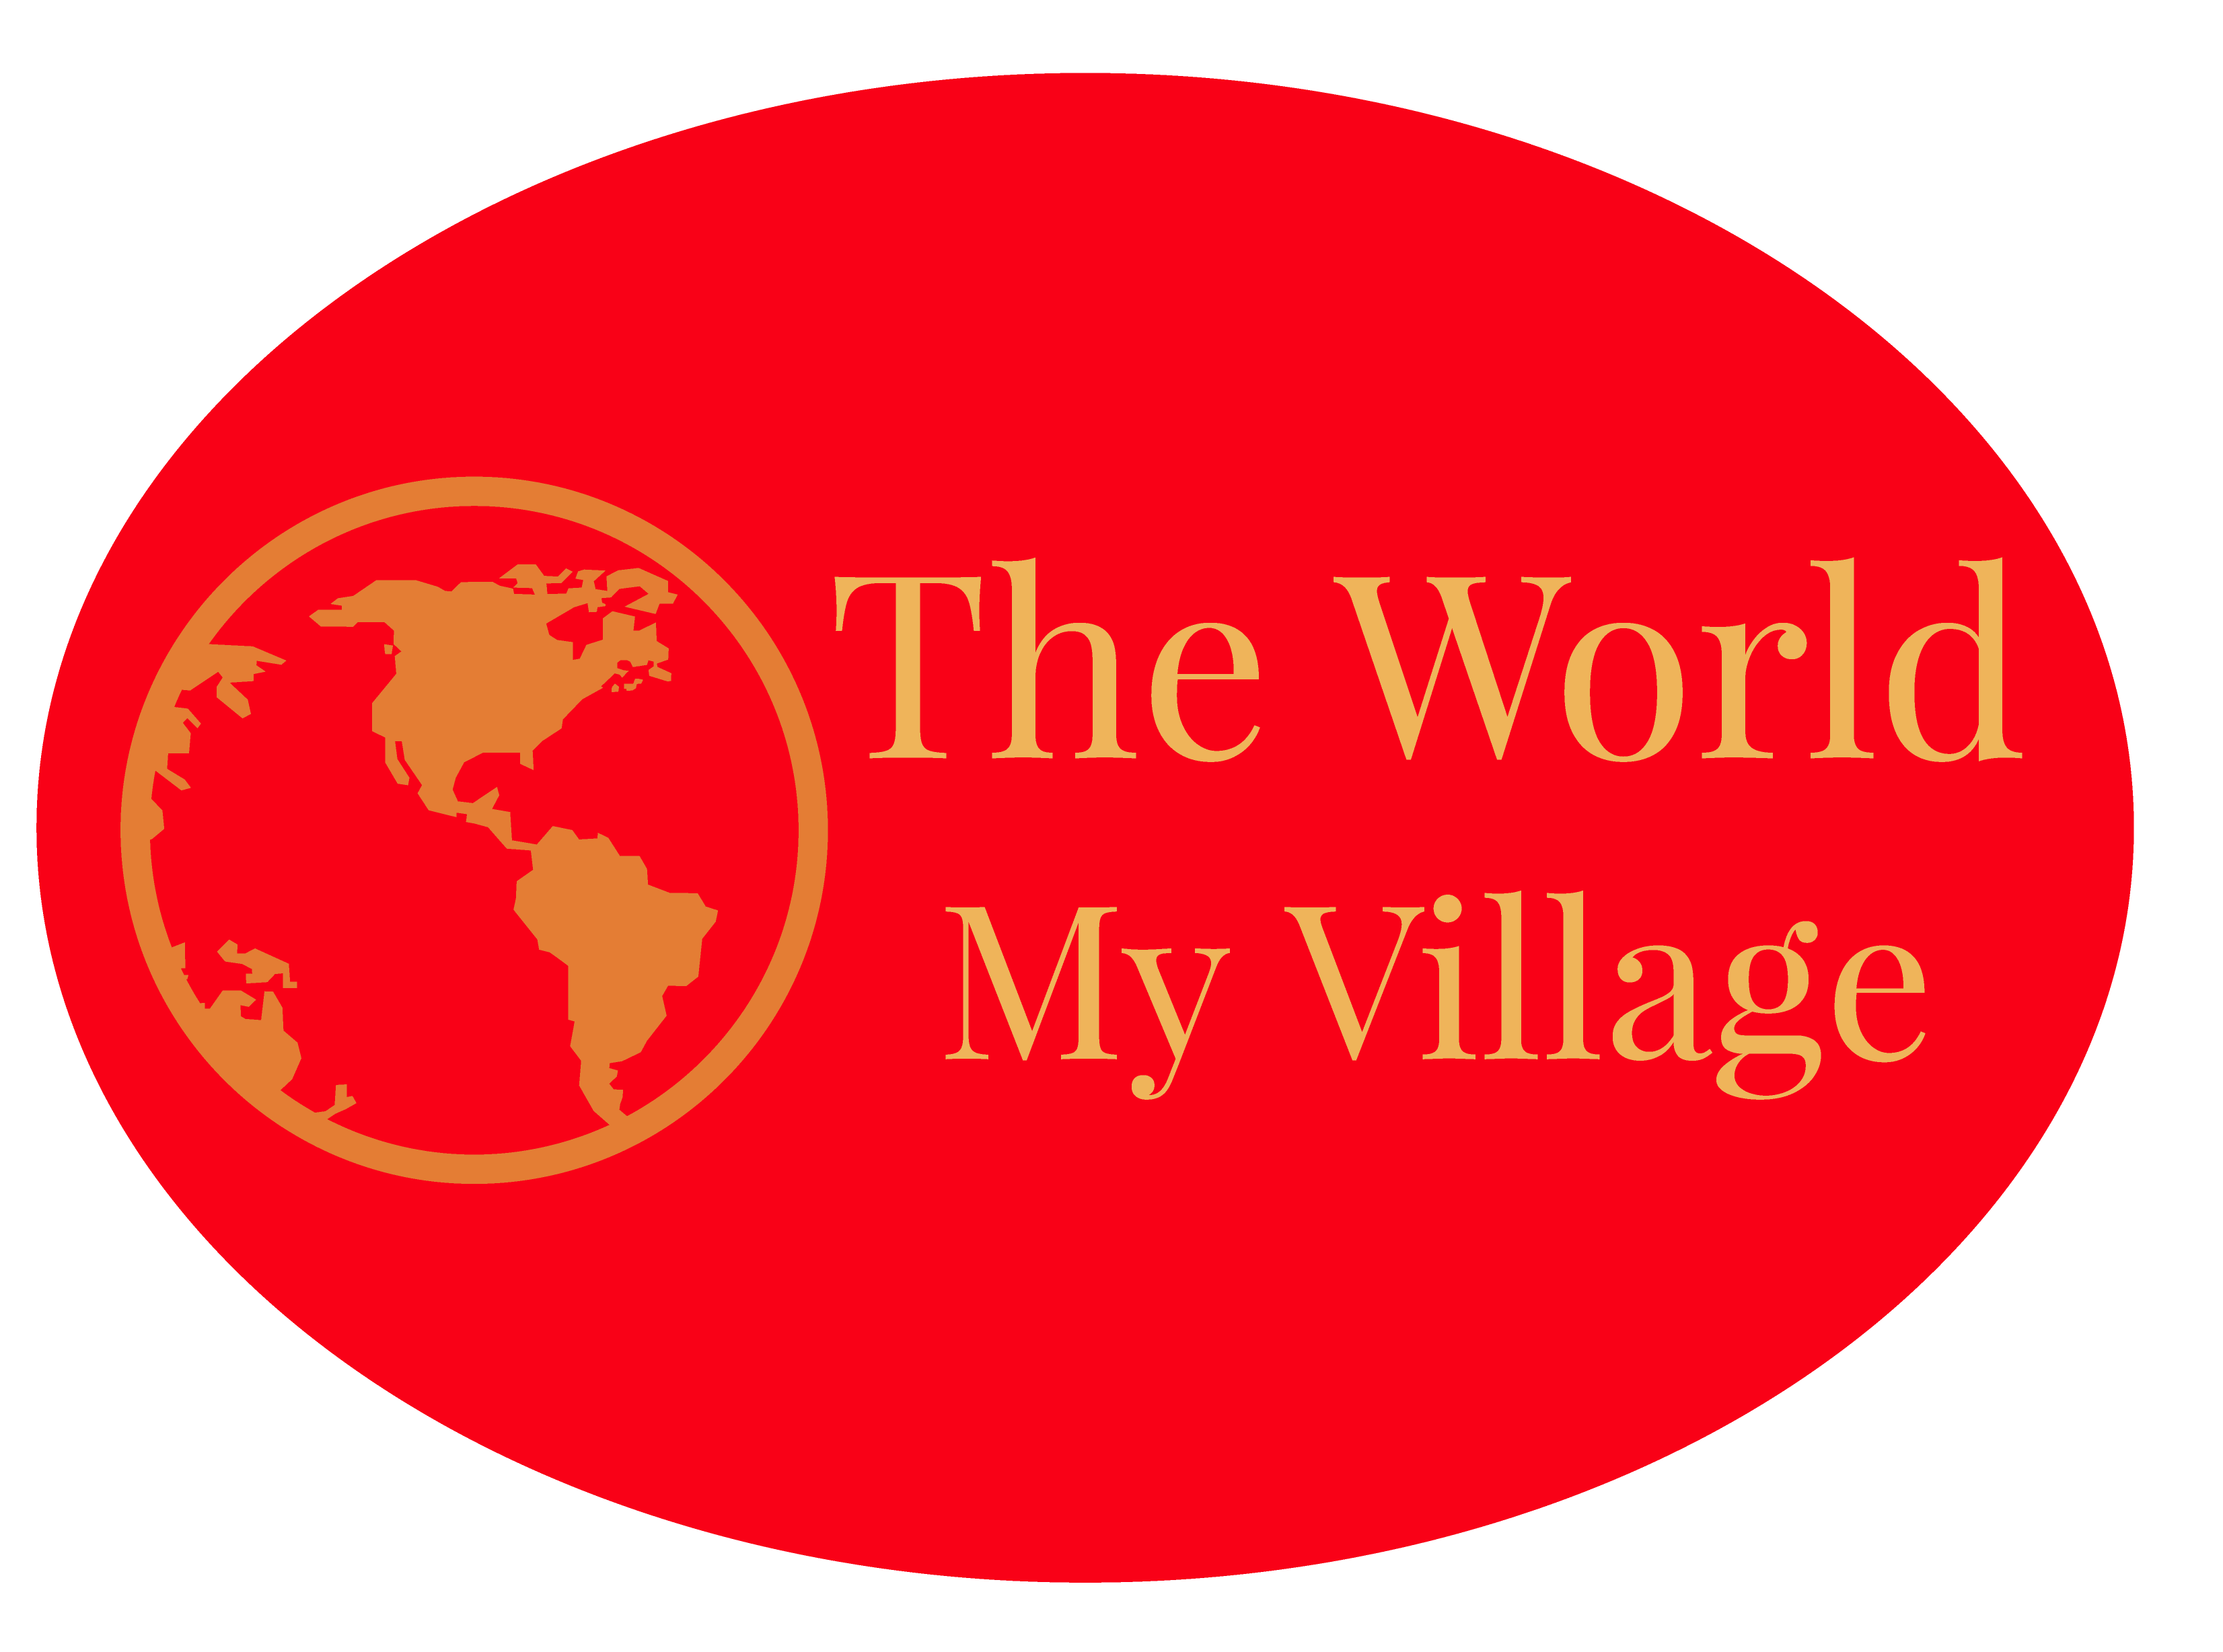 the world is our village paragraph